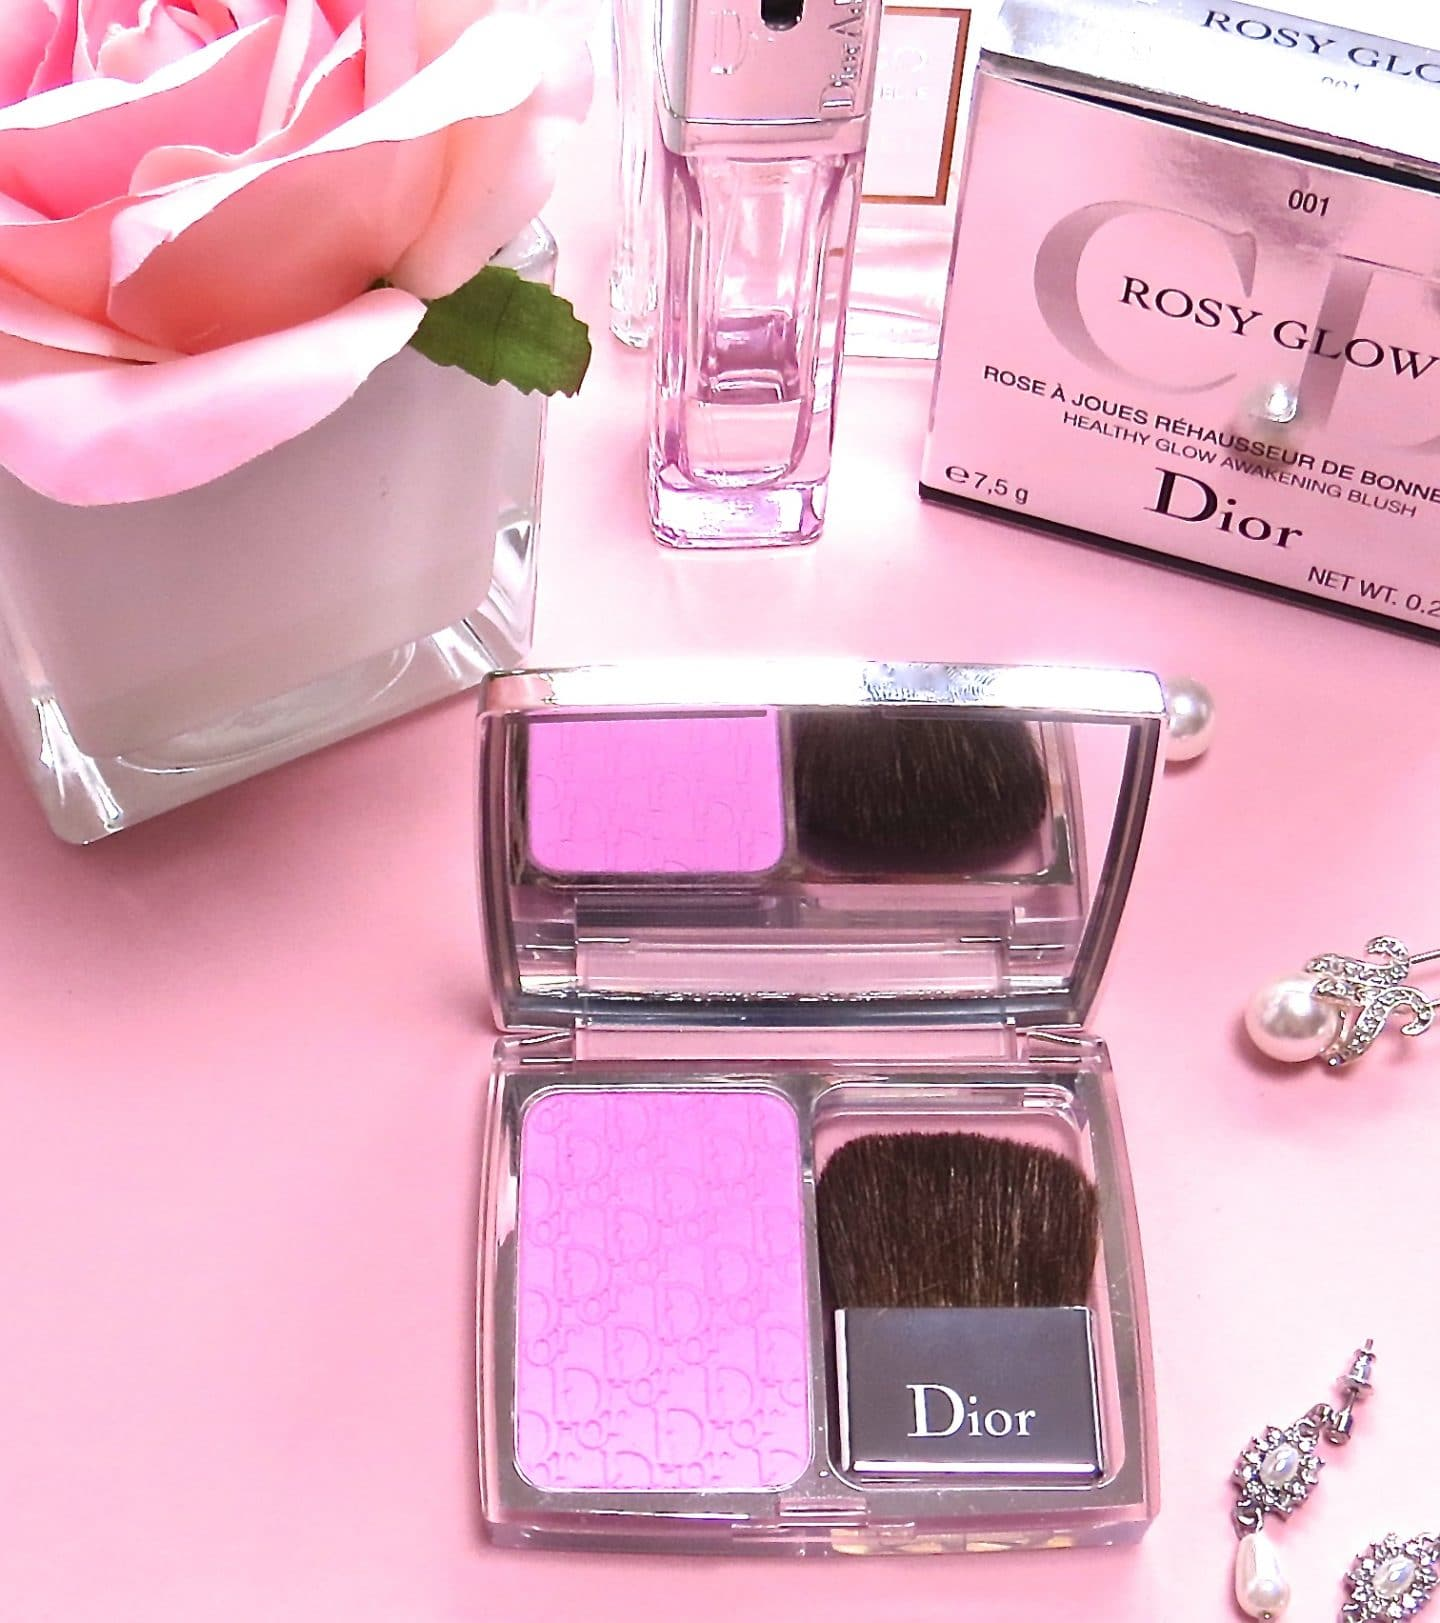 dior Rosy Glow blusher in Petal Pink